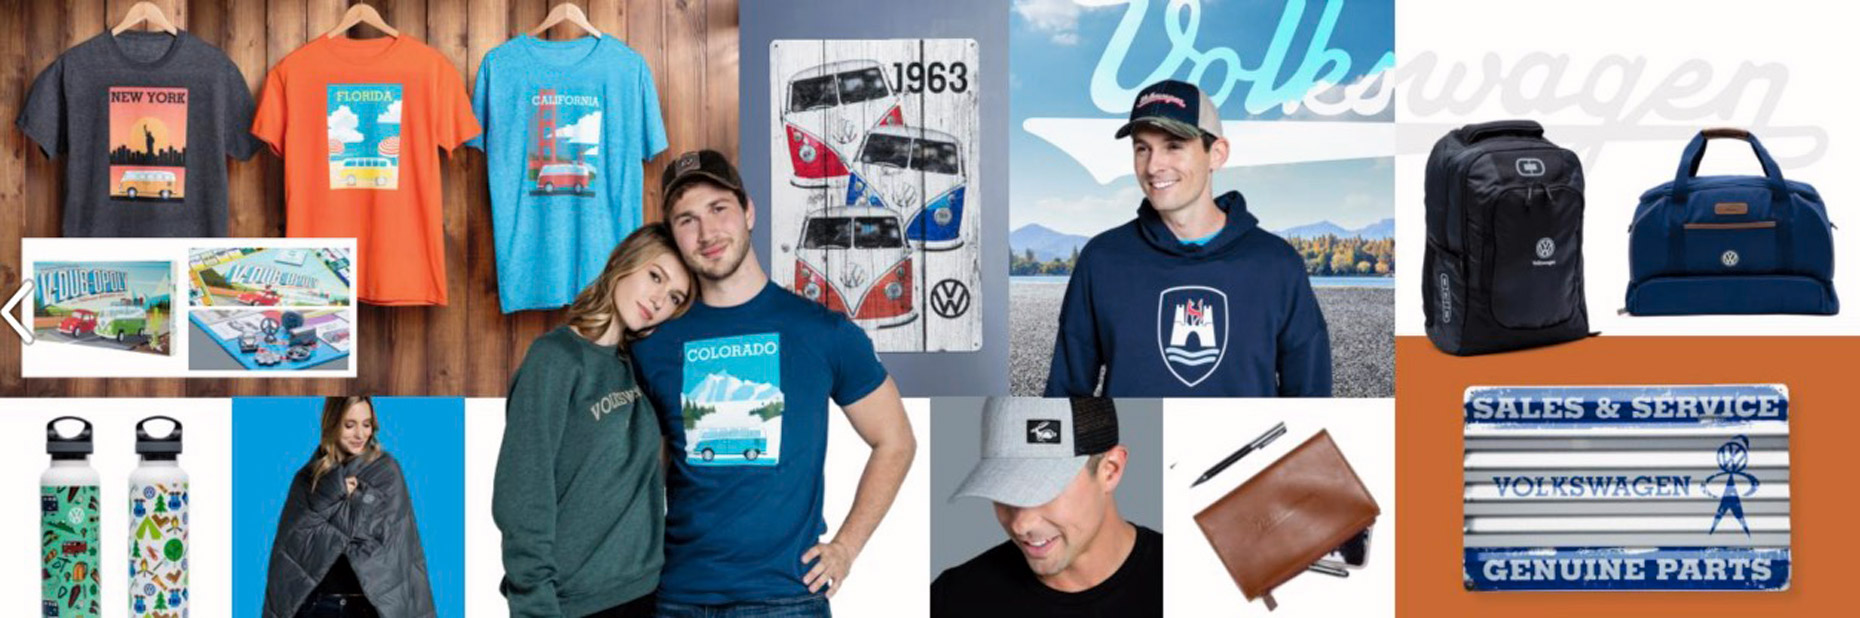 VW-Drivergear-Catalog00016